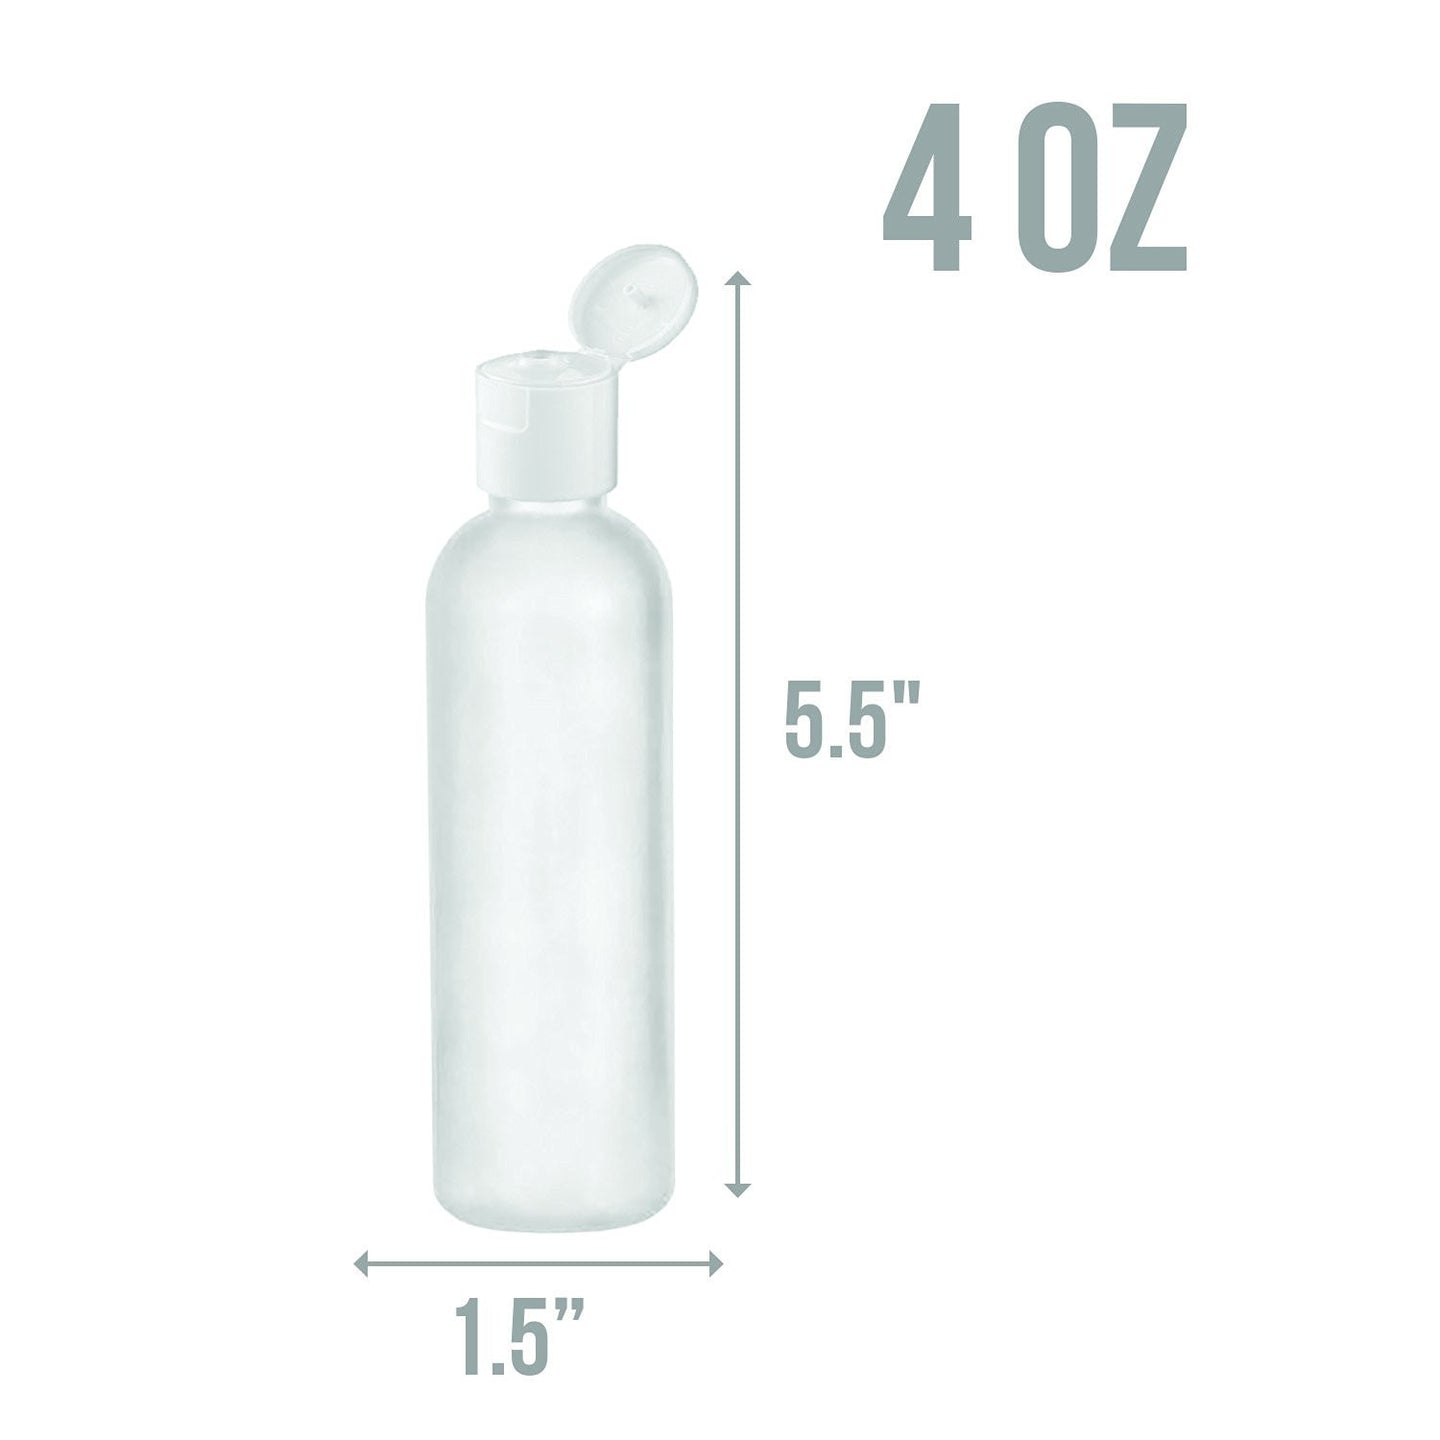 MoYo Natural Labs 4 oz Travel Bottles, Empty Travel Containers with Flip Caps, BPA Free HDPE Plastic Squeezable Toiletry/Cosmetic Bottles (Neck 24-410) (Pack of 30, Translucent White)